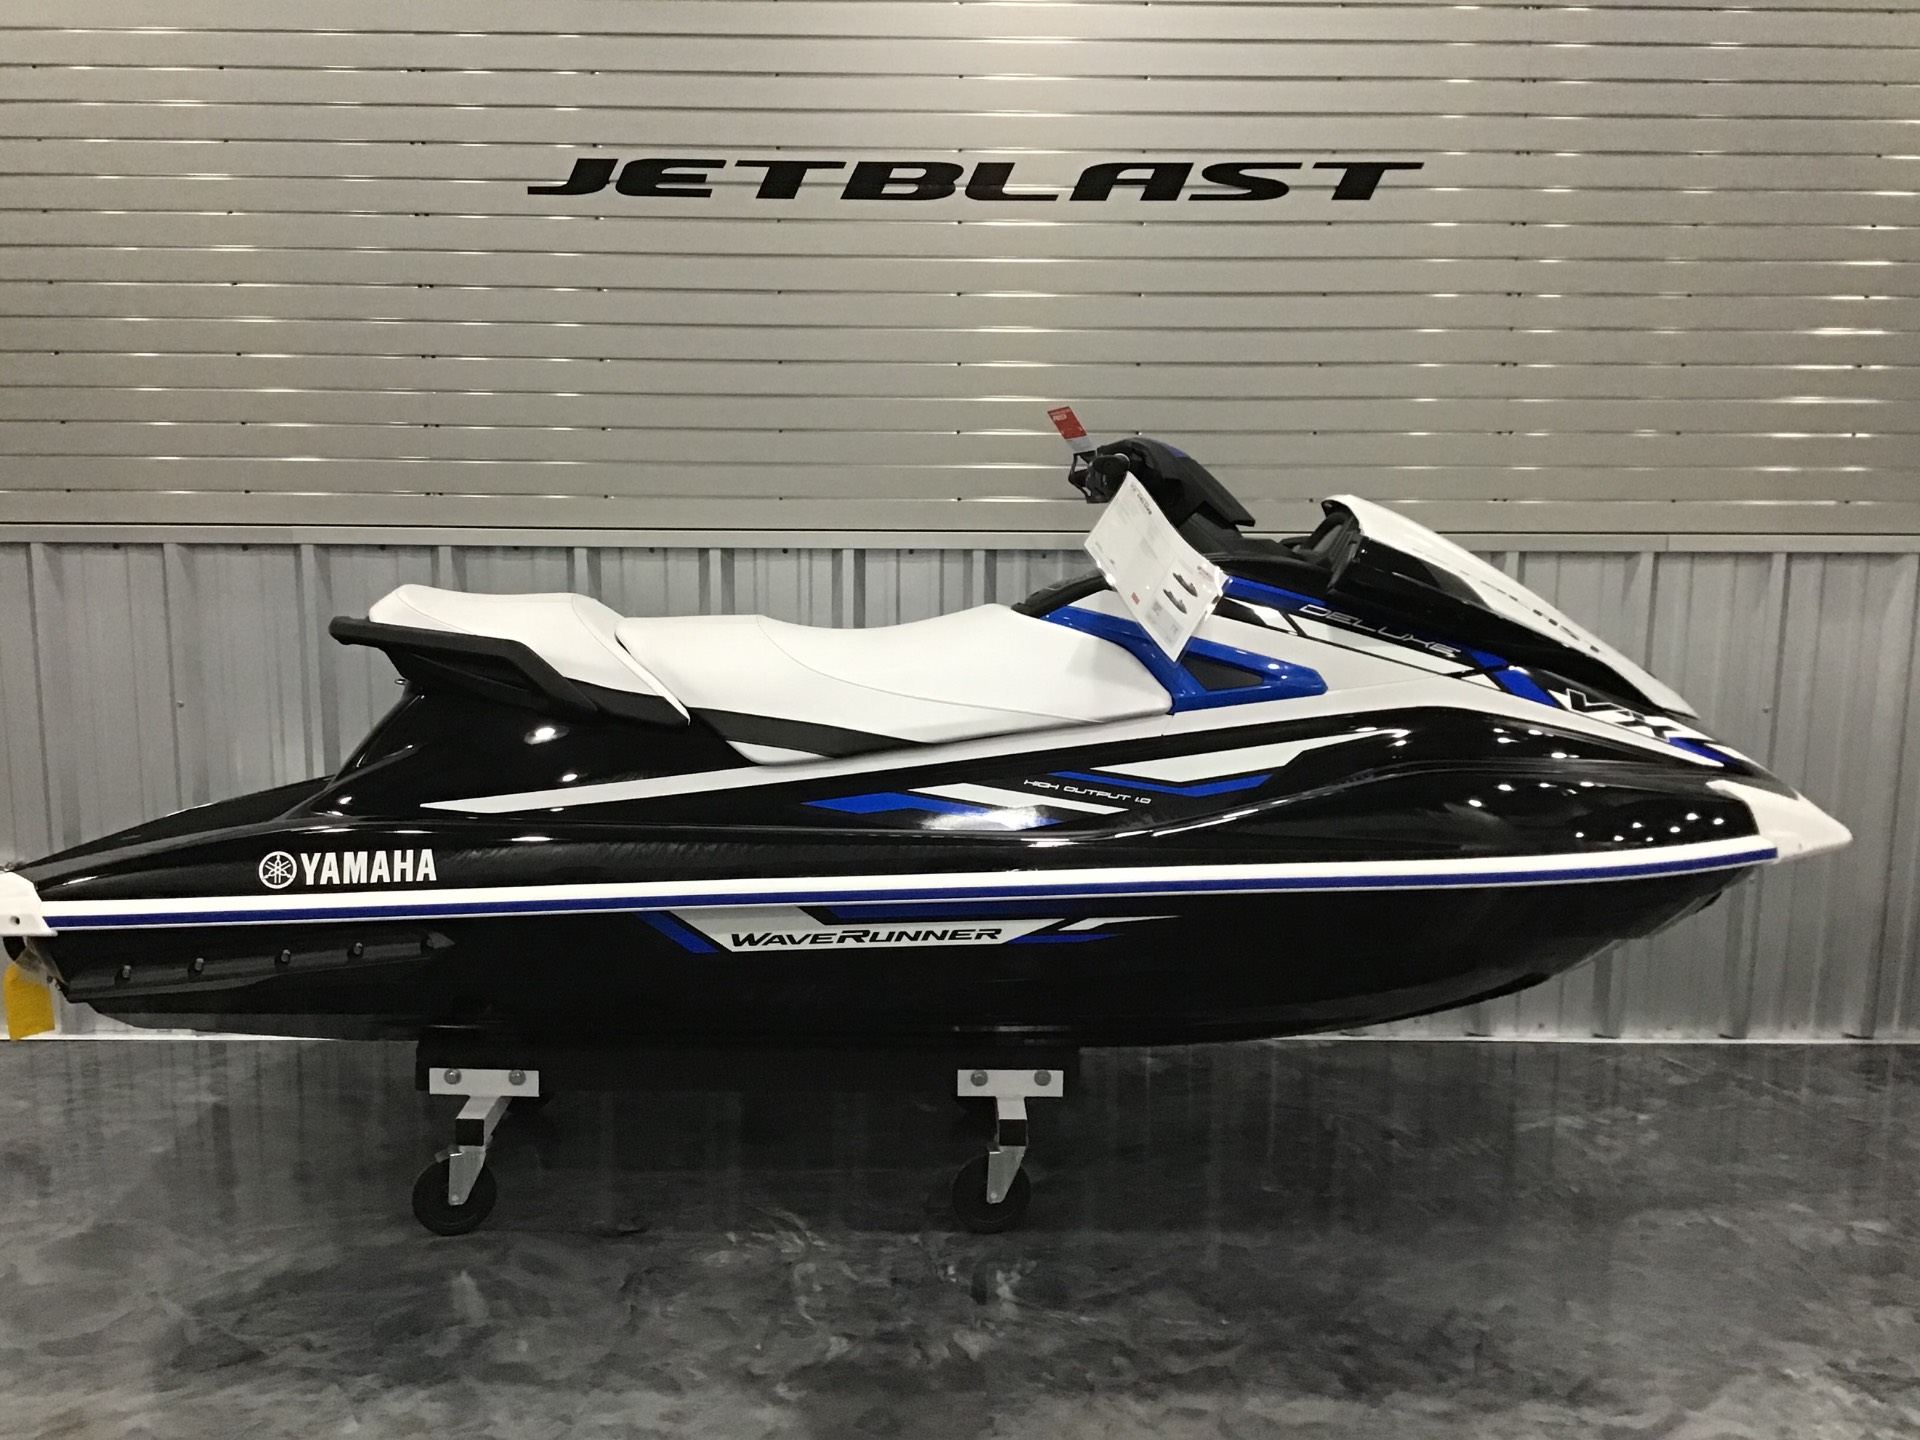 2019 Yamaha VX Deluxe in Gulfport, Mississippi - Photo 2